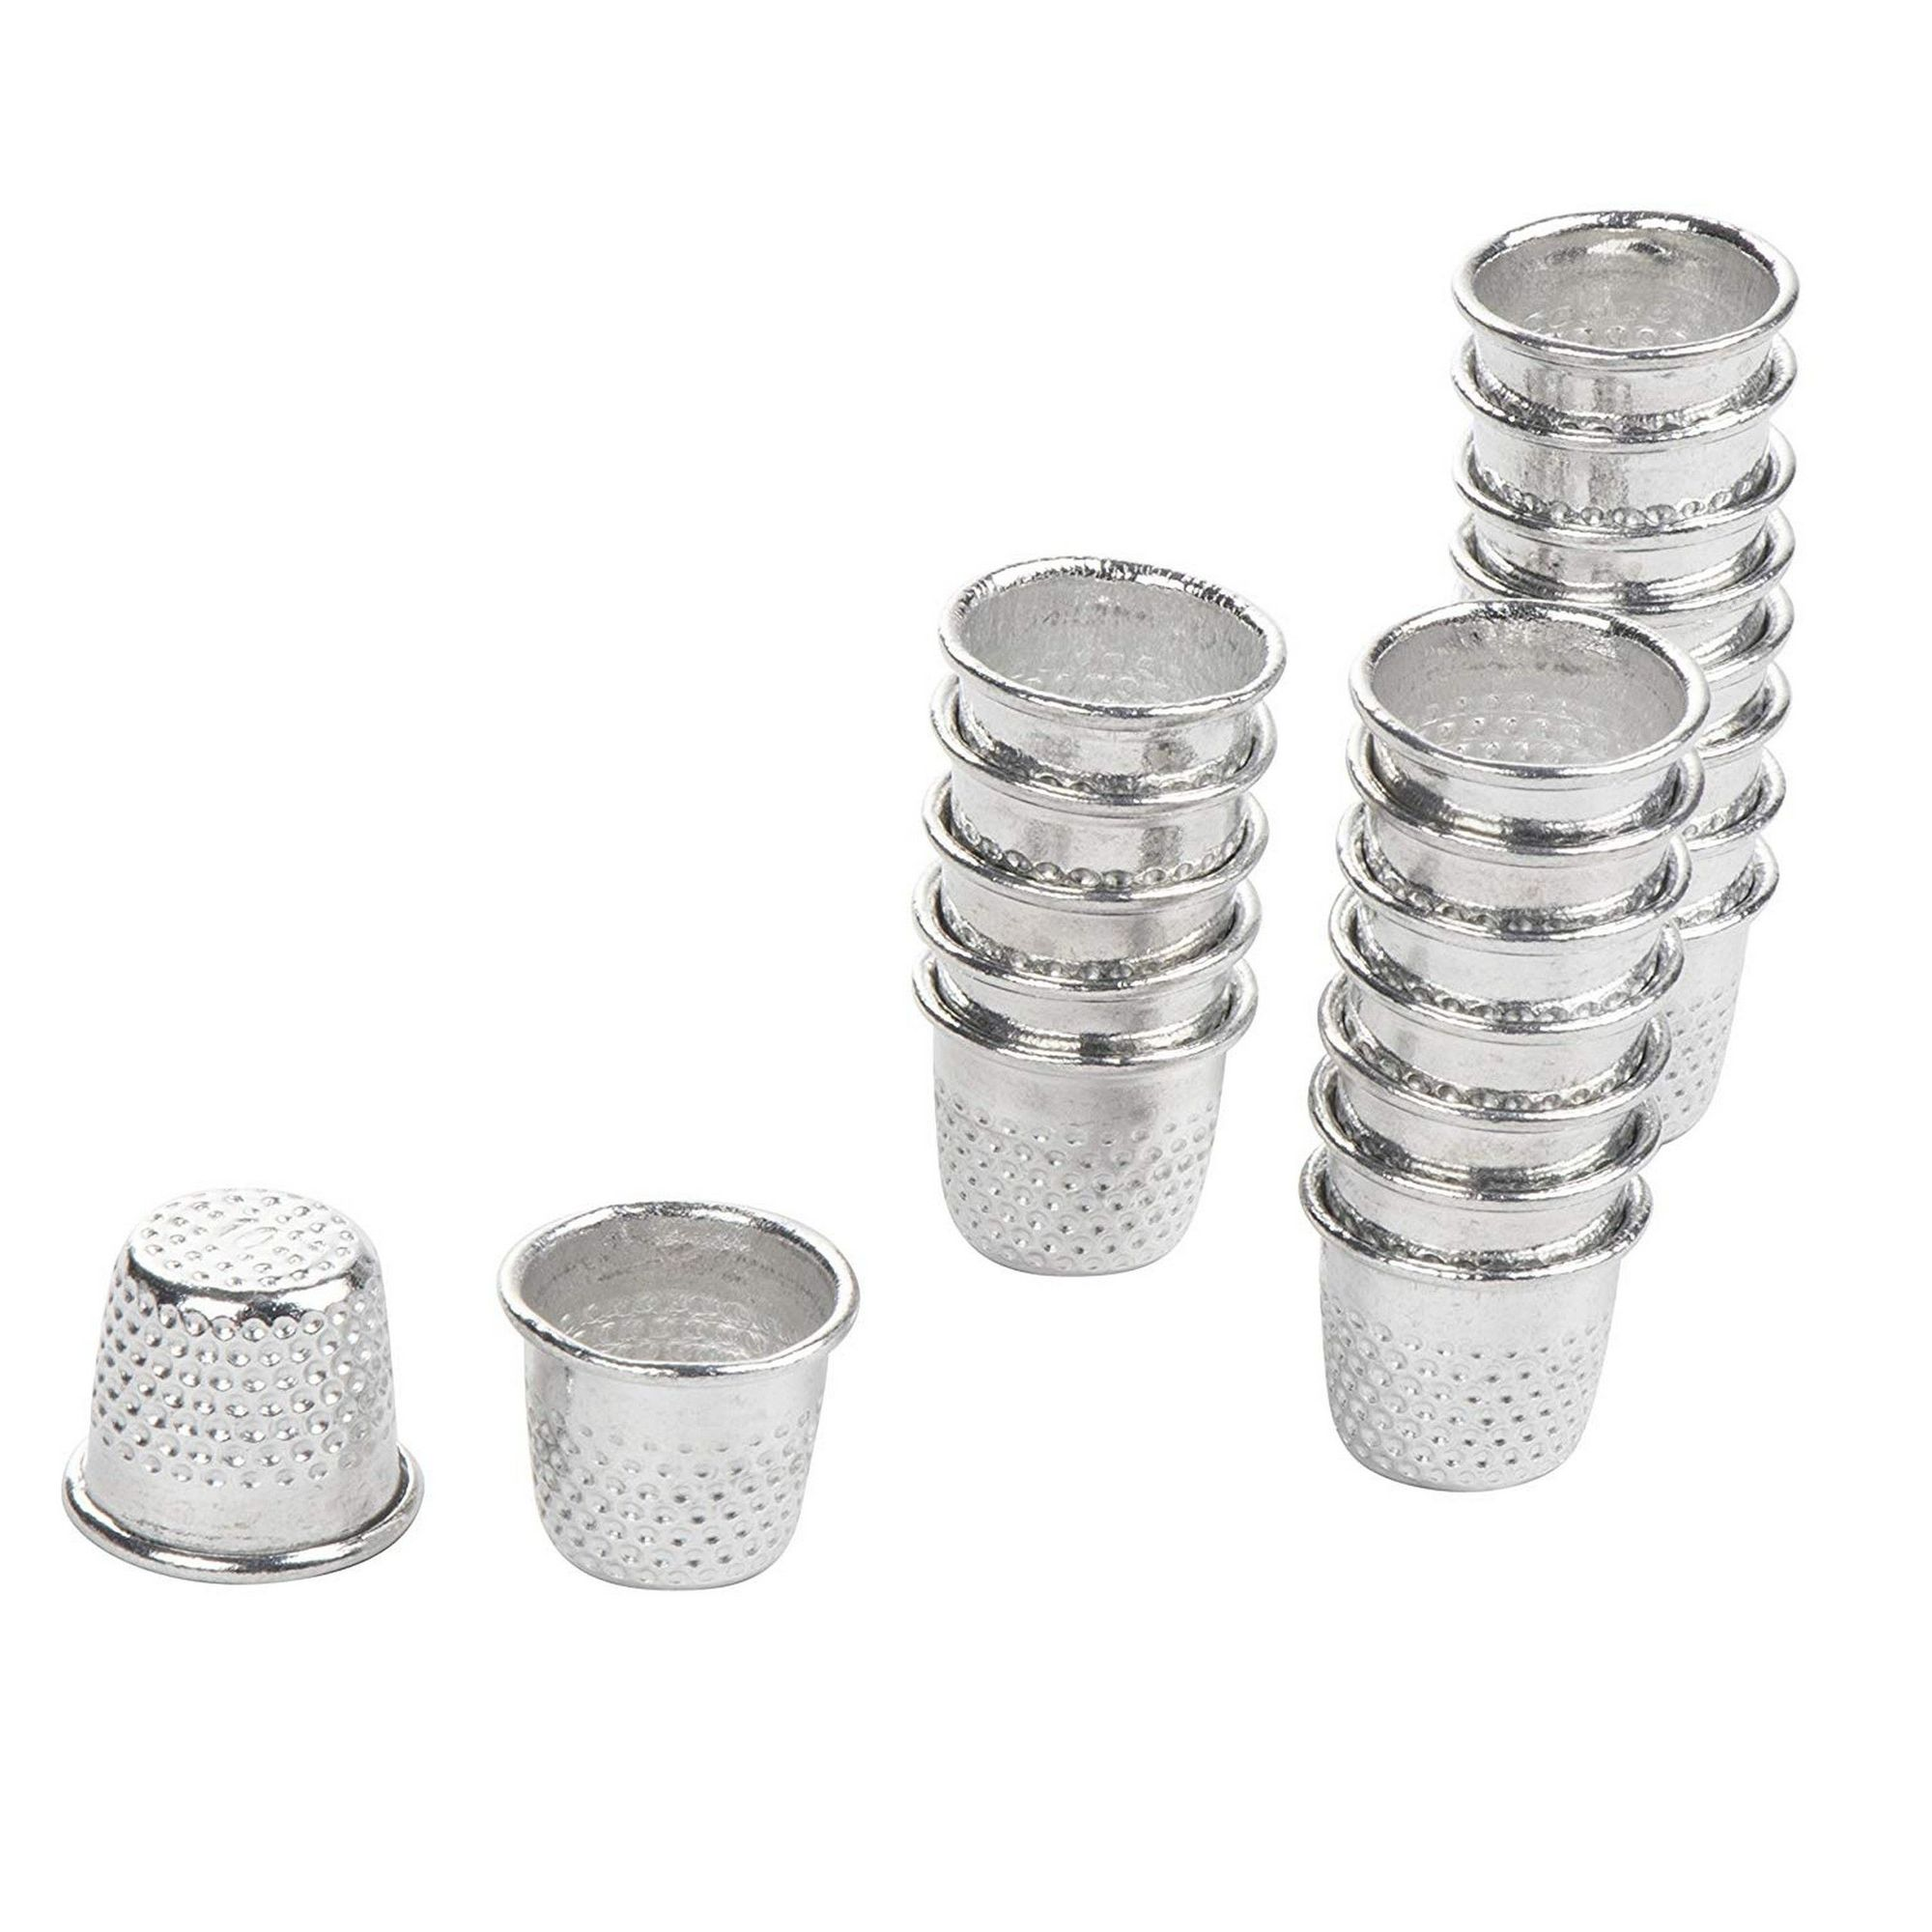 Romote 10PCs Silver Toned Metal 17-19mm Vintage Sewing Thimbles for DIY Crafts Finger Protector